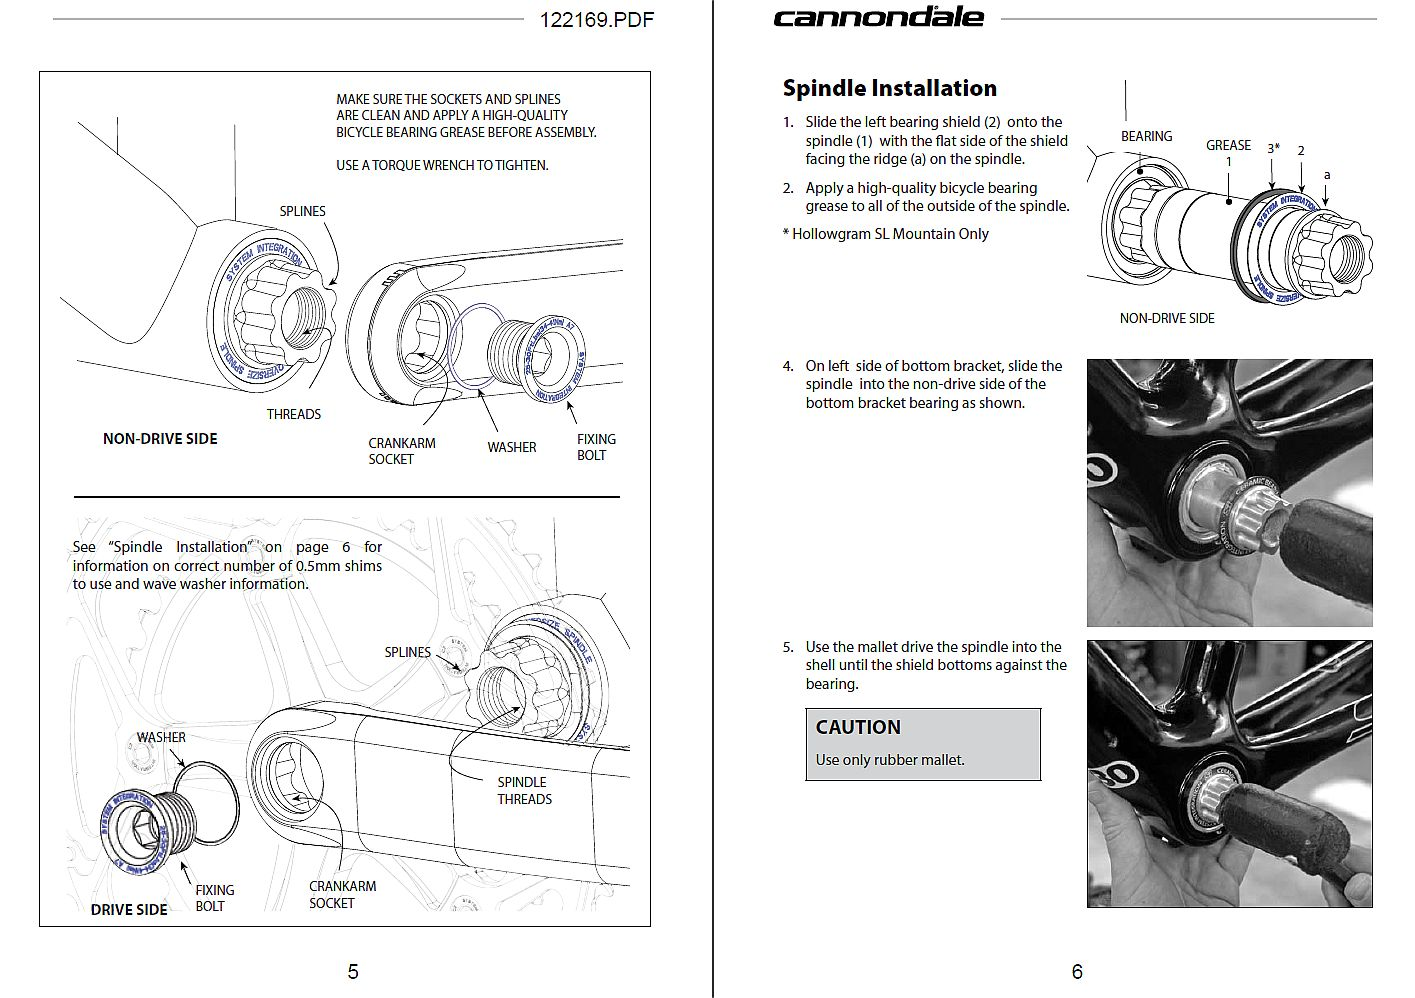 Cannondale Crankset Manual